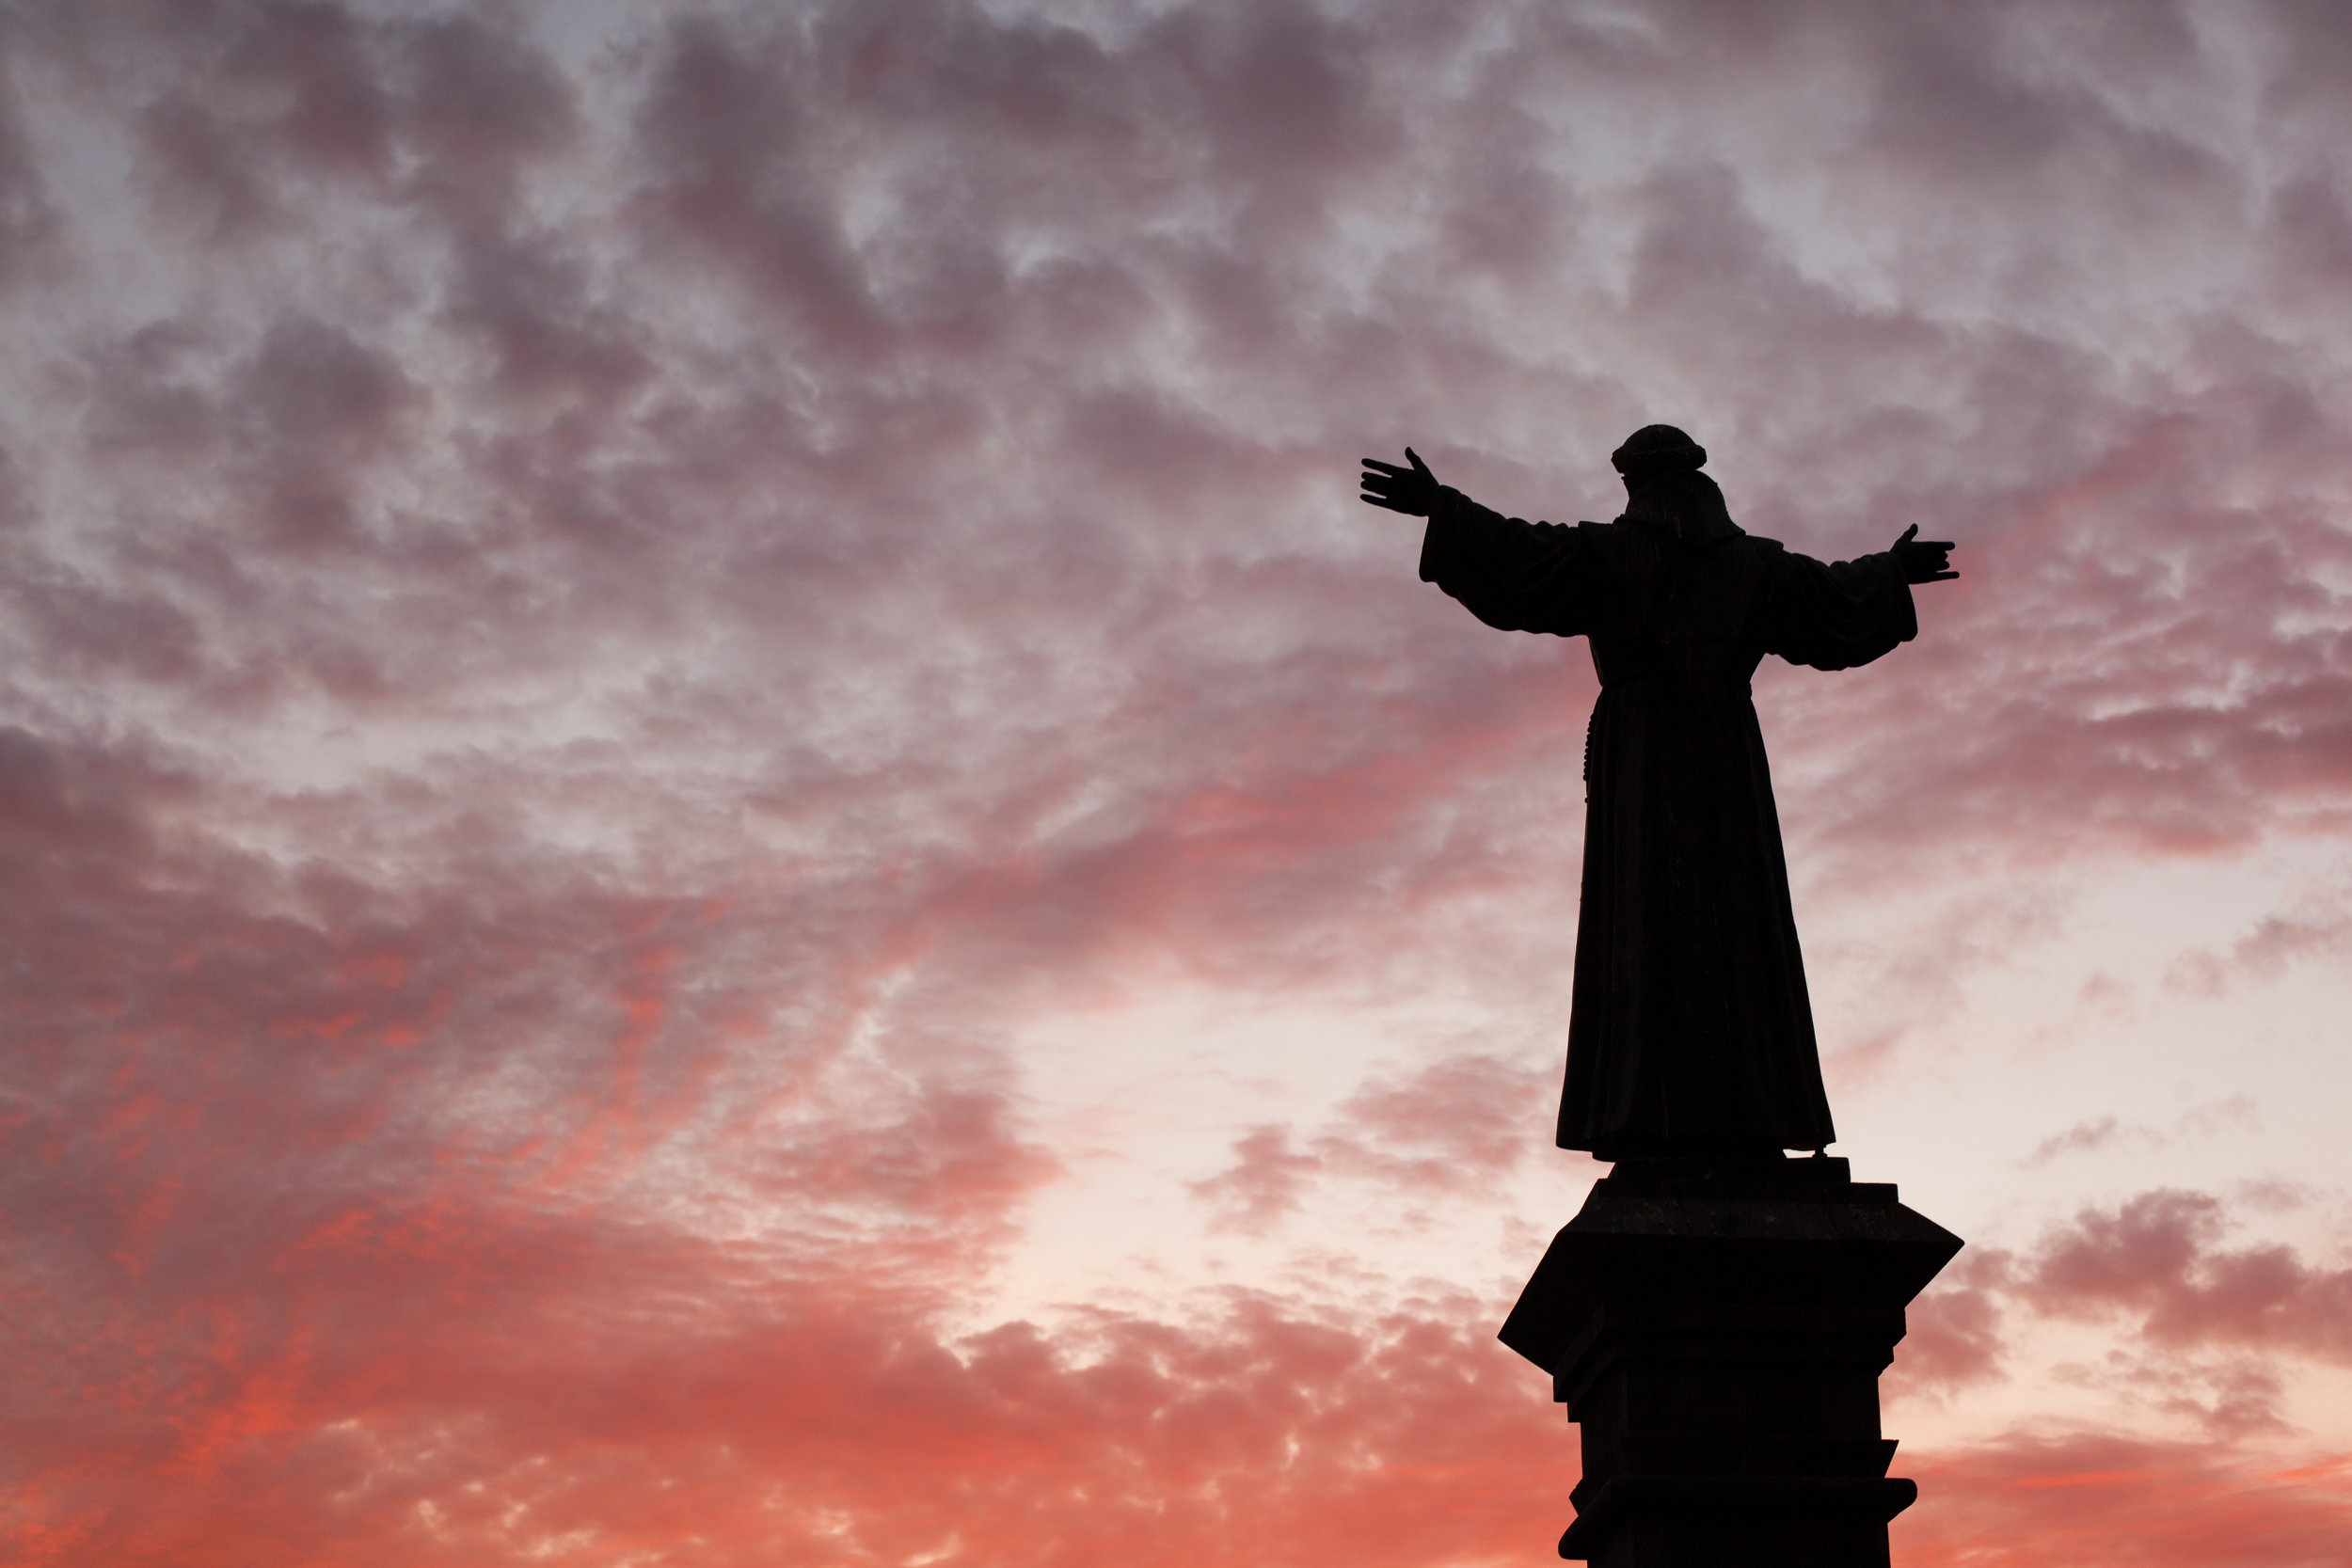 A blood red sky behind a religious statue in Arequipa, Peru.